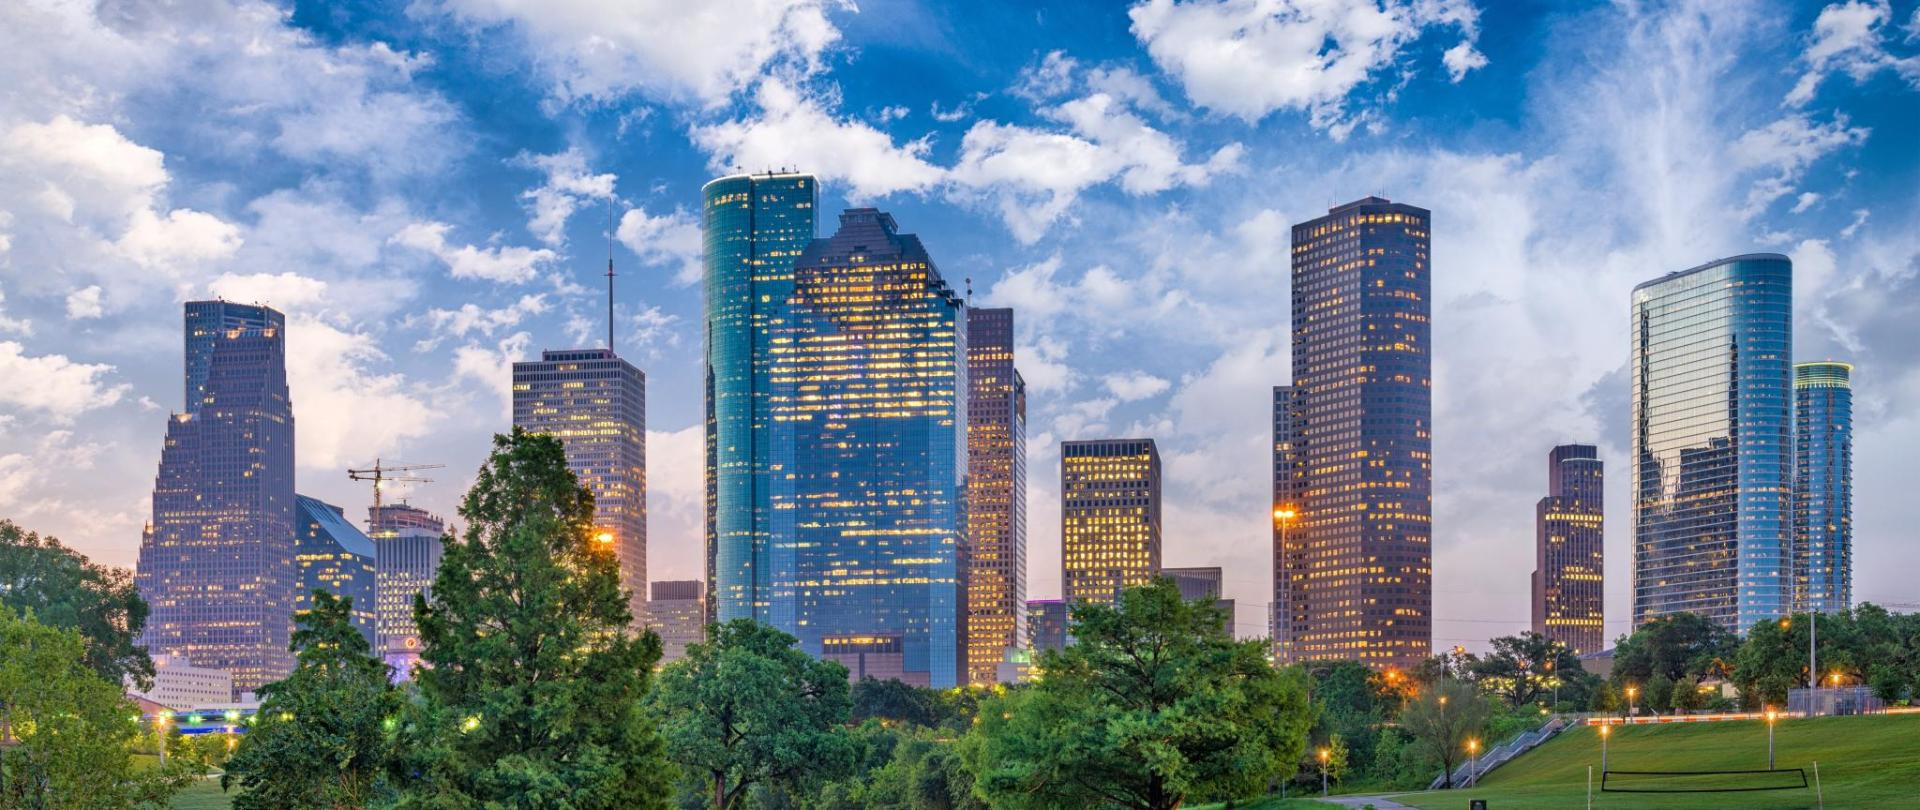 Houston Texas city skyline.jpg